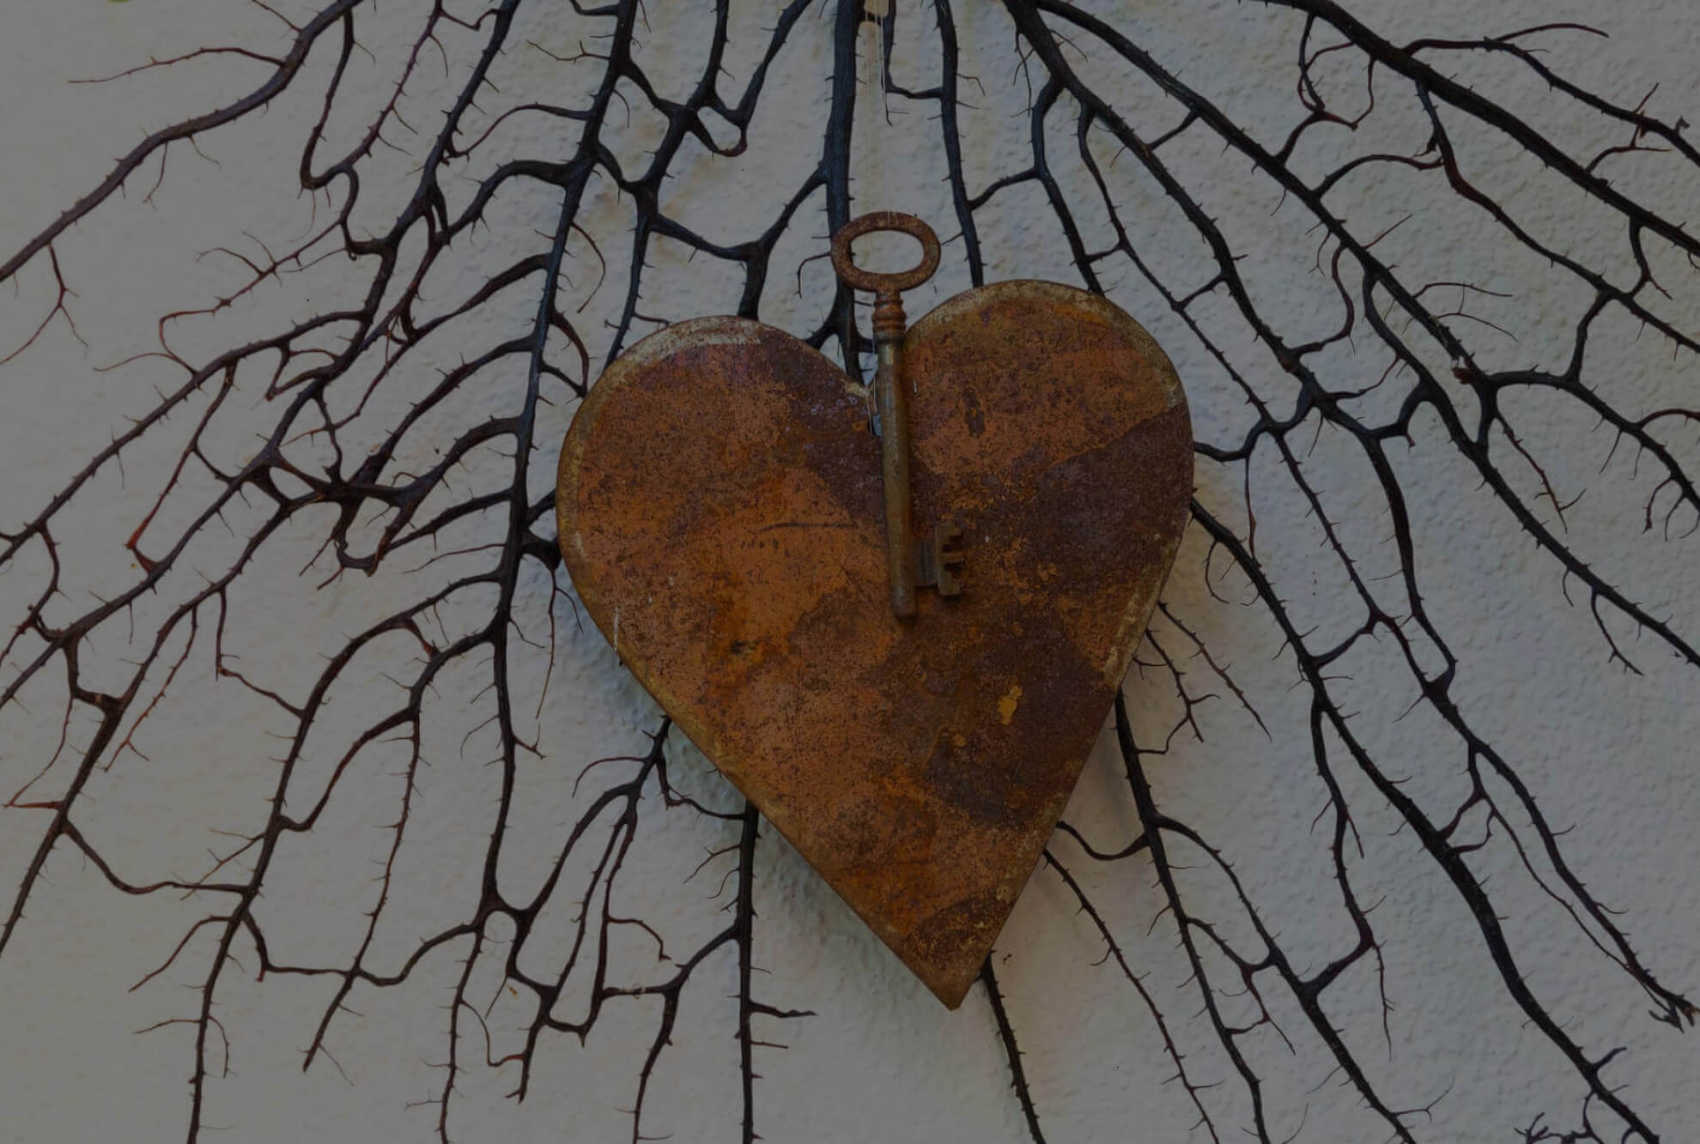 A heart with a key